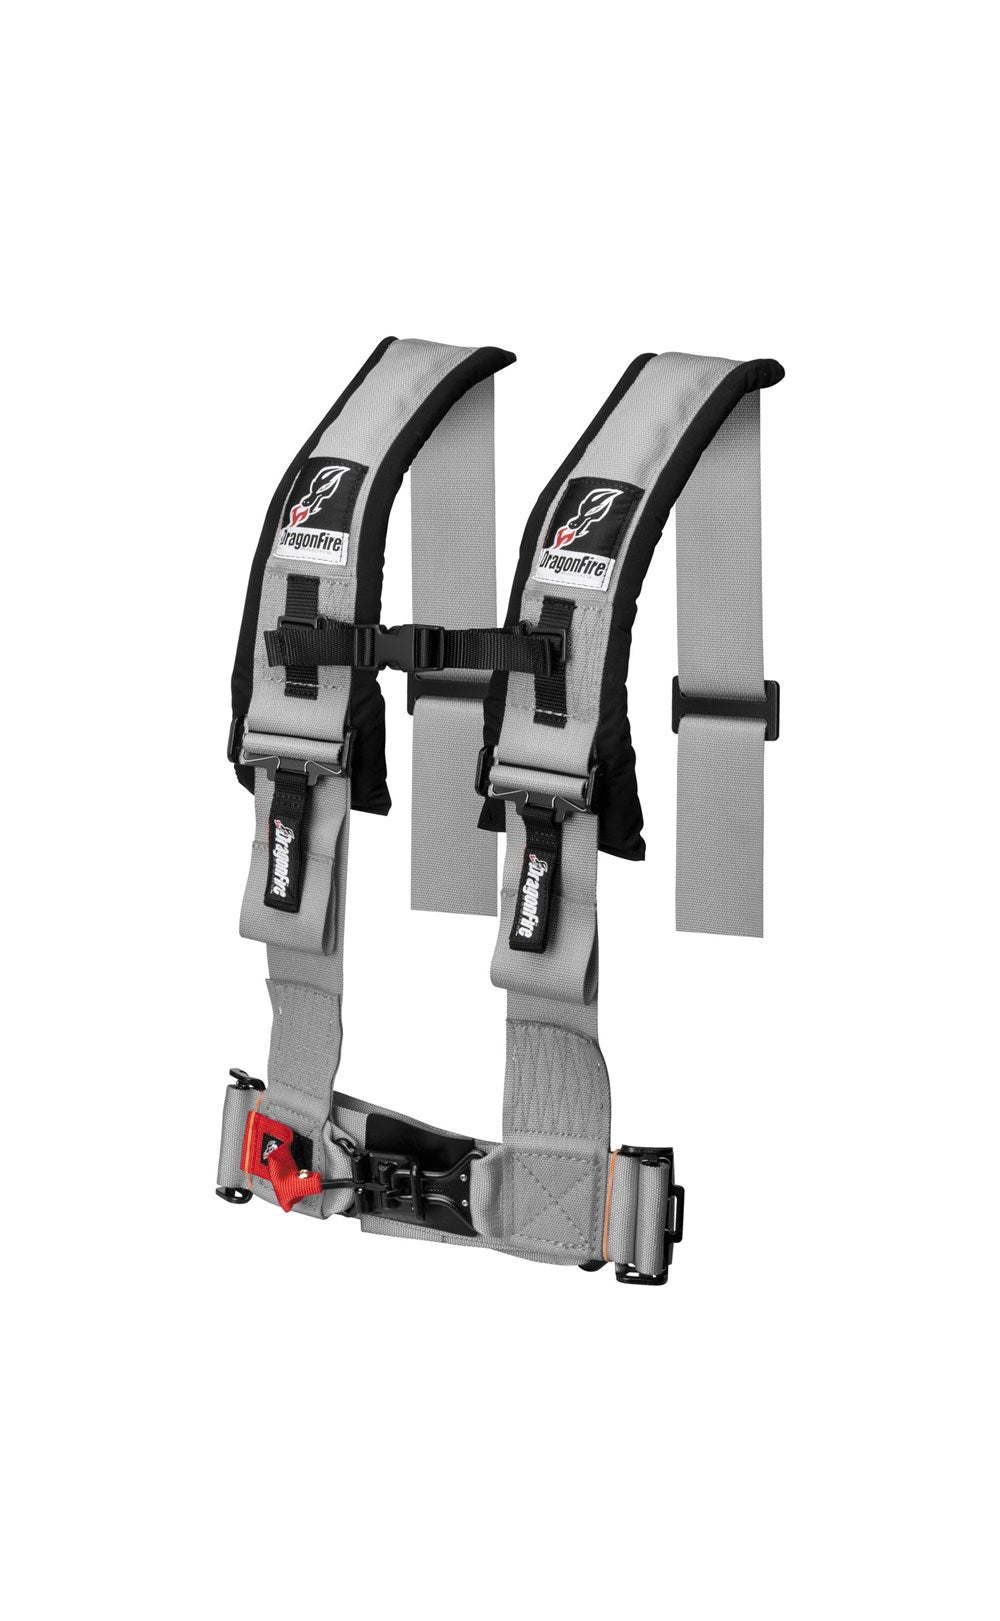 Dragonfire Racing 4-Point Harness 3